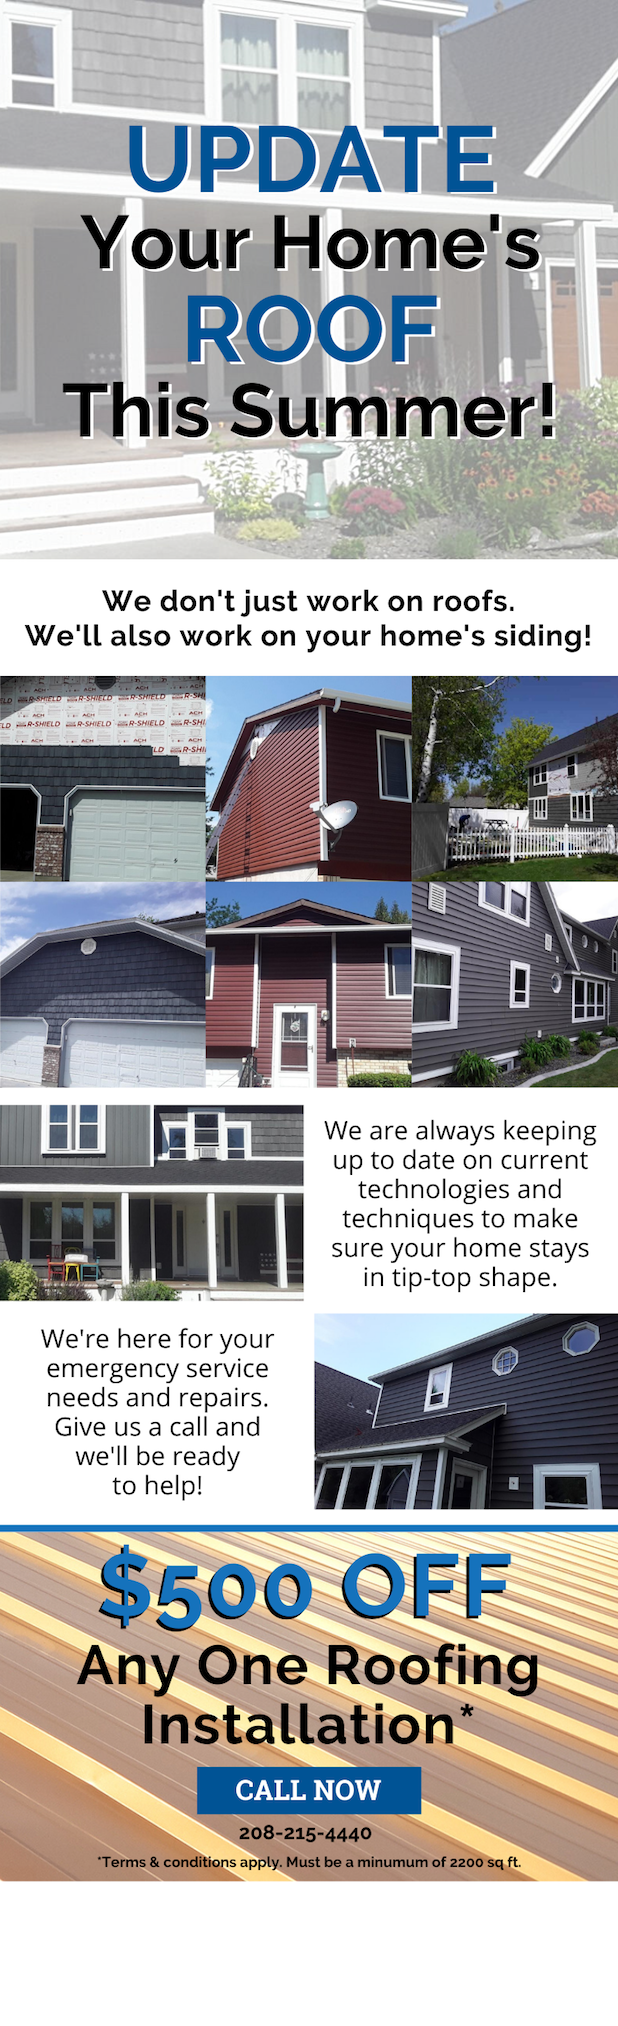 Upgrade Your Roof This Summer! 3